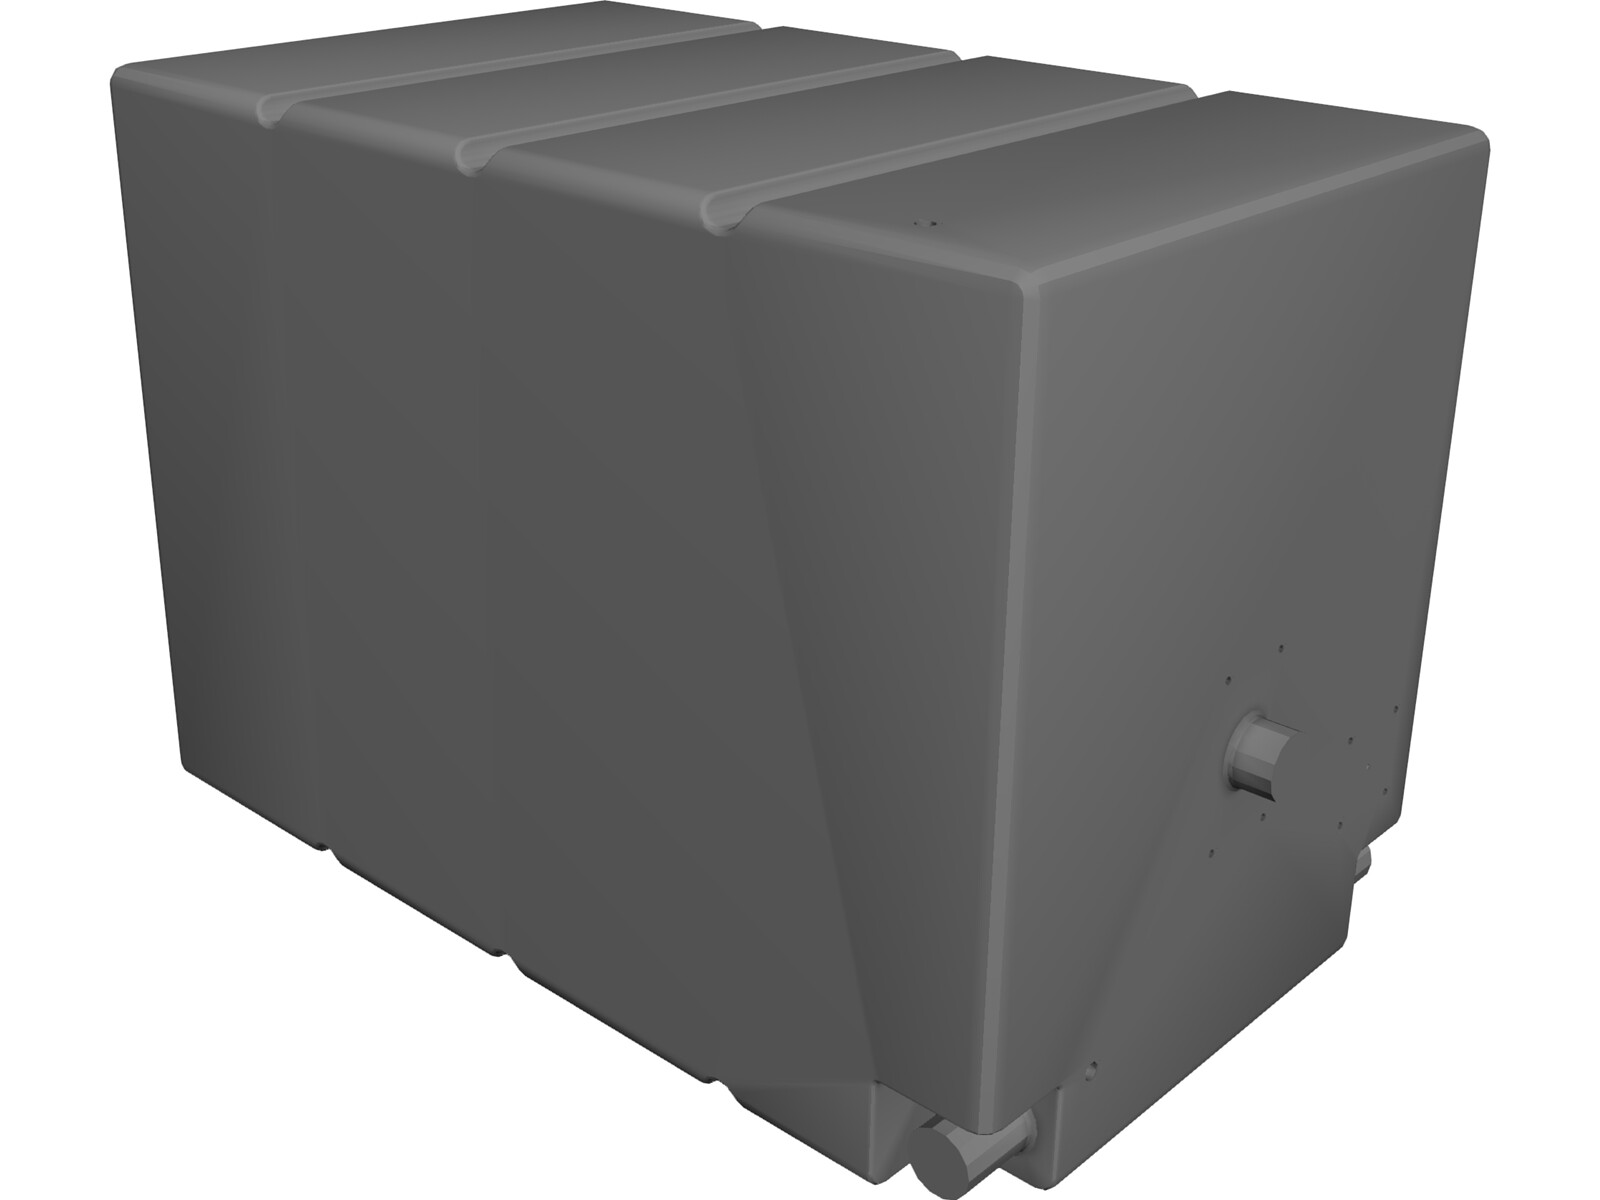 Square Water Tank 3D CAD Model